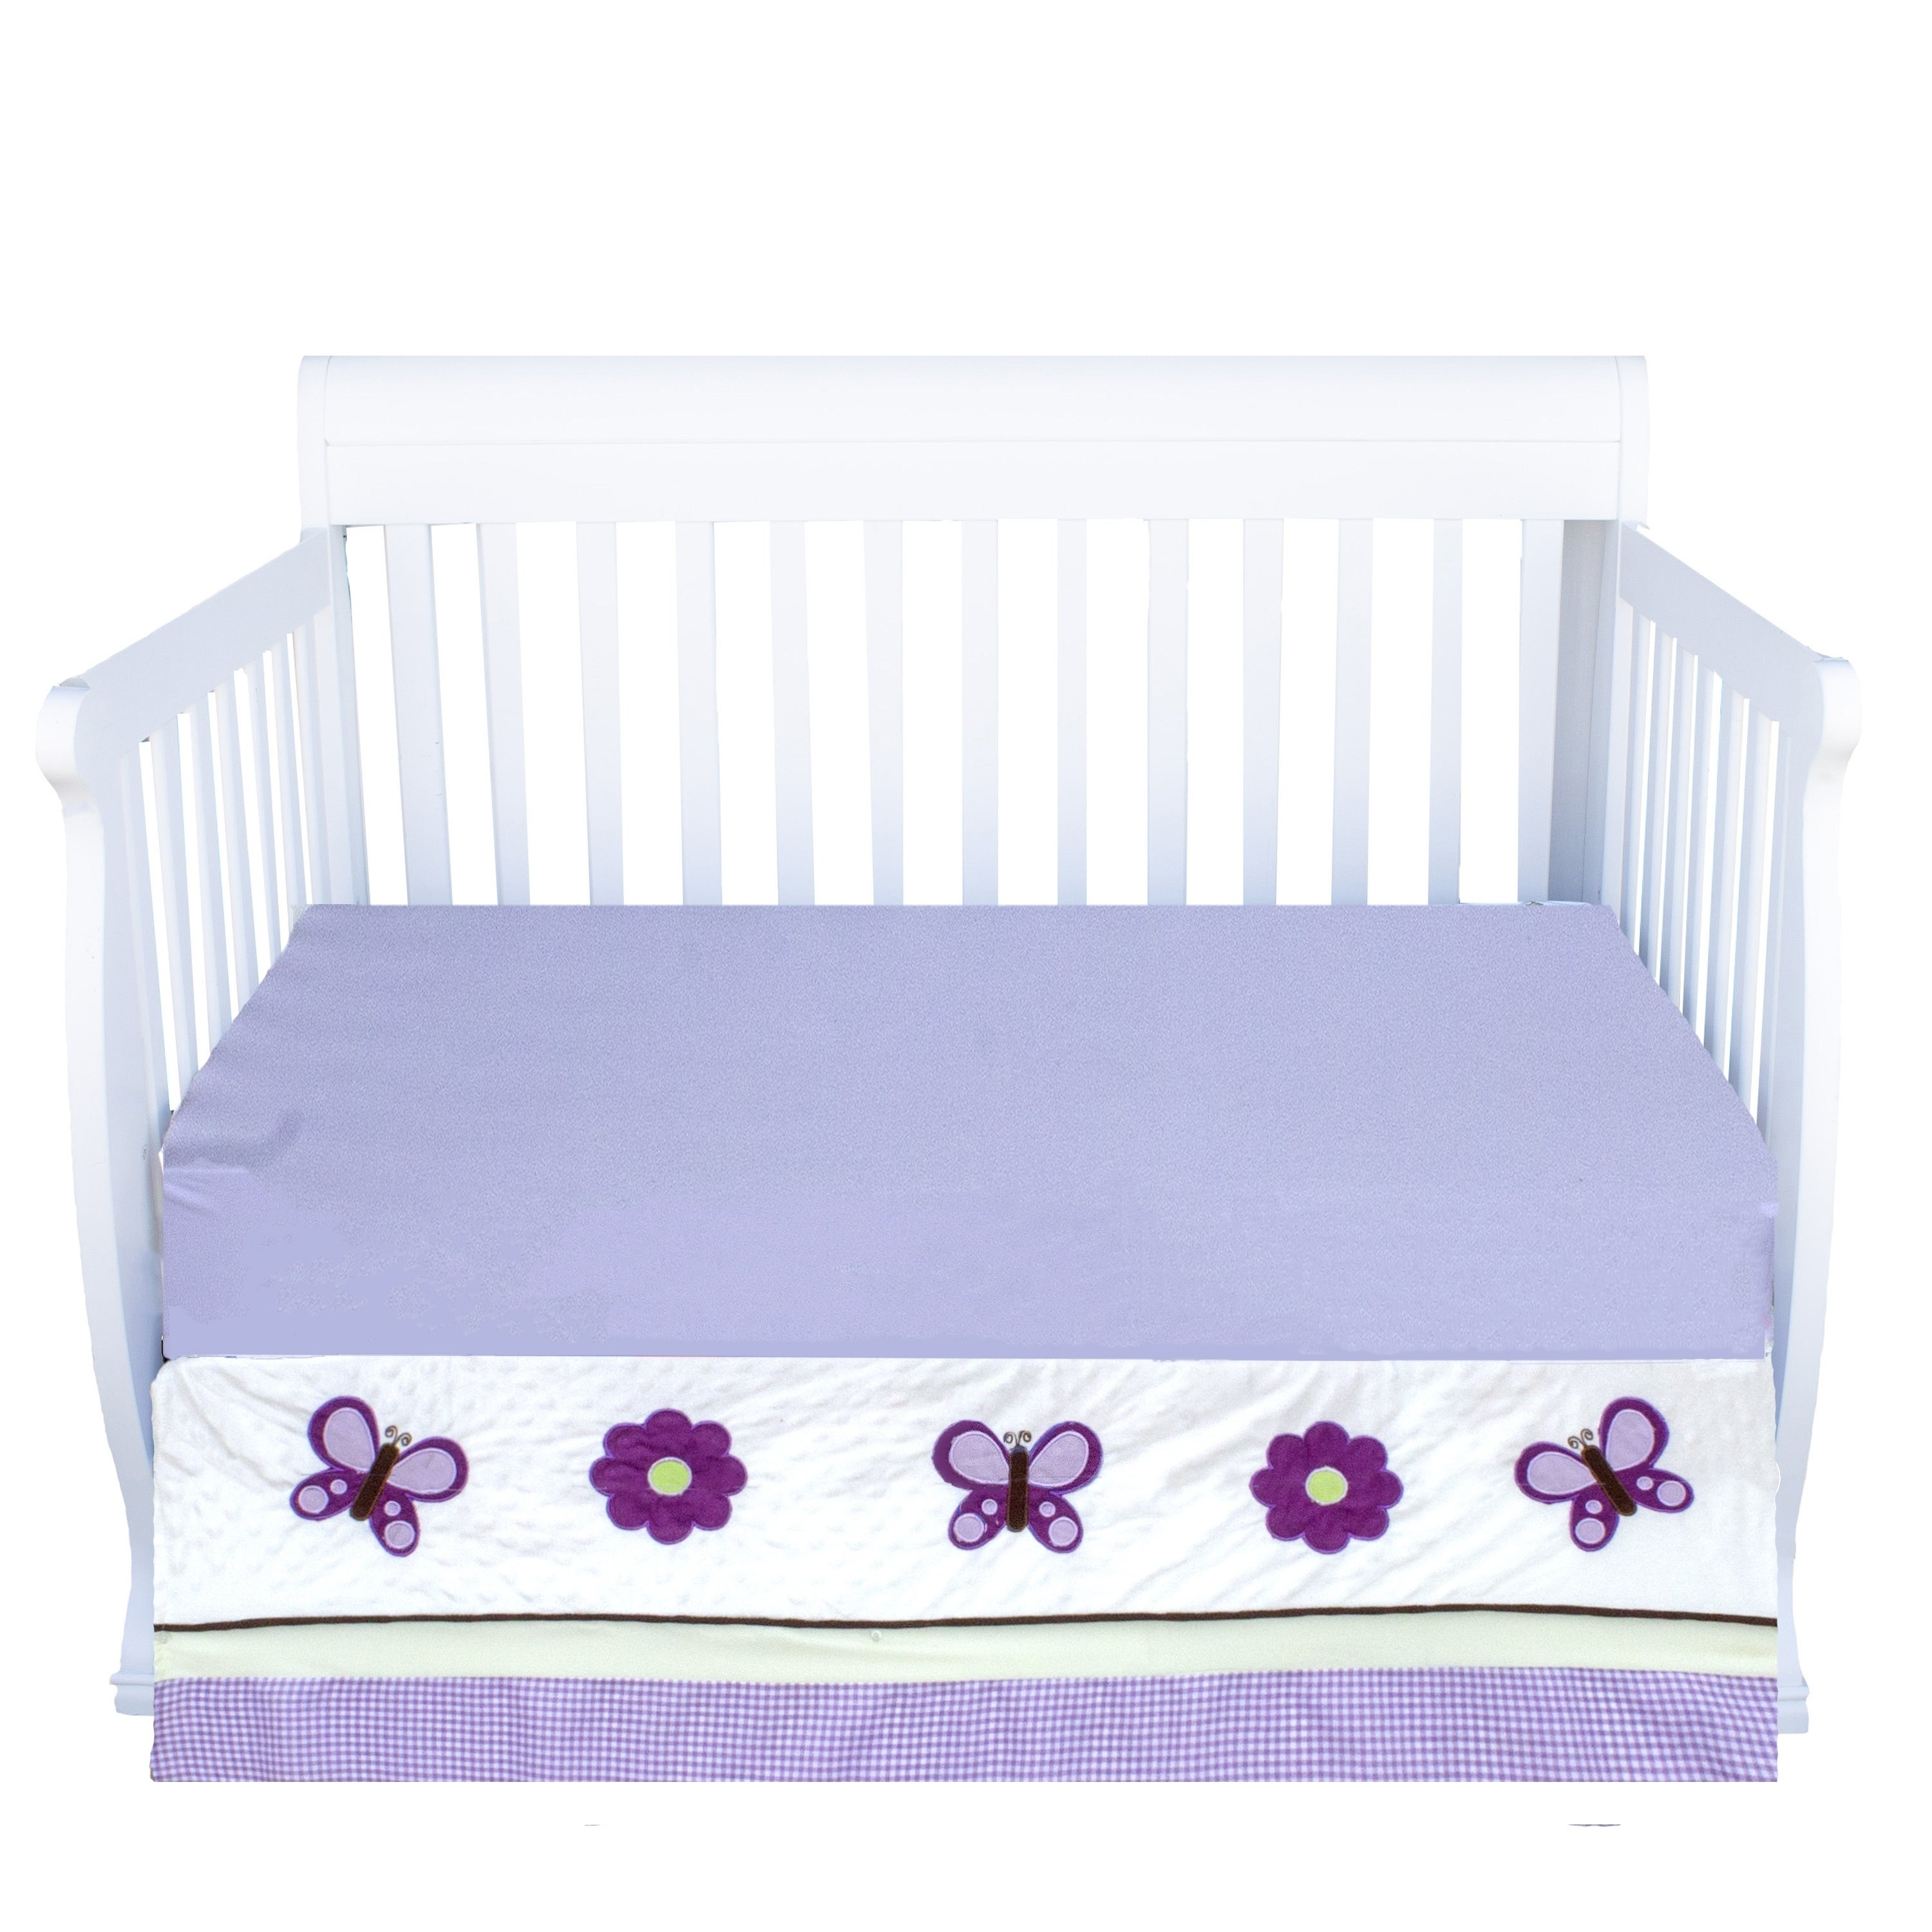 Image of: Shop Black Friday Deals On Pam Grace Creations Lavender Butterfly Crib Bedding Set Overstock 10517632